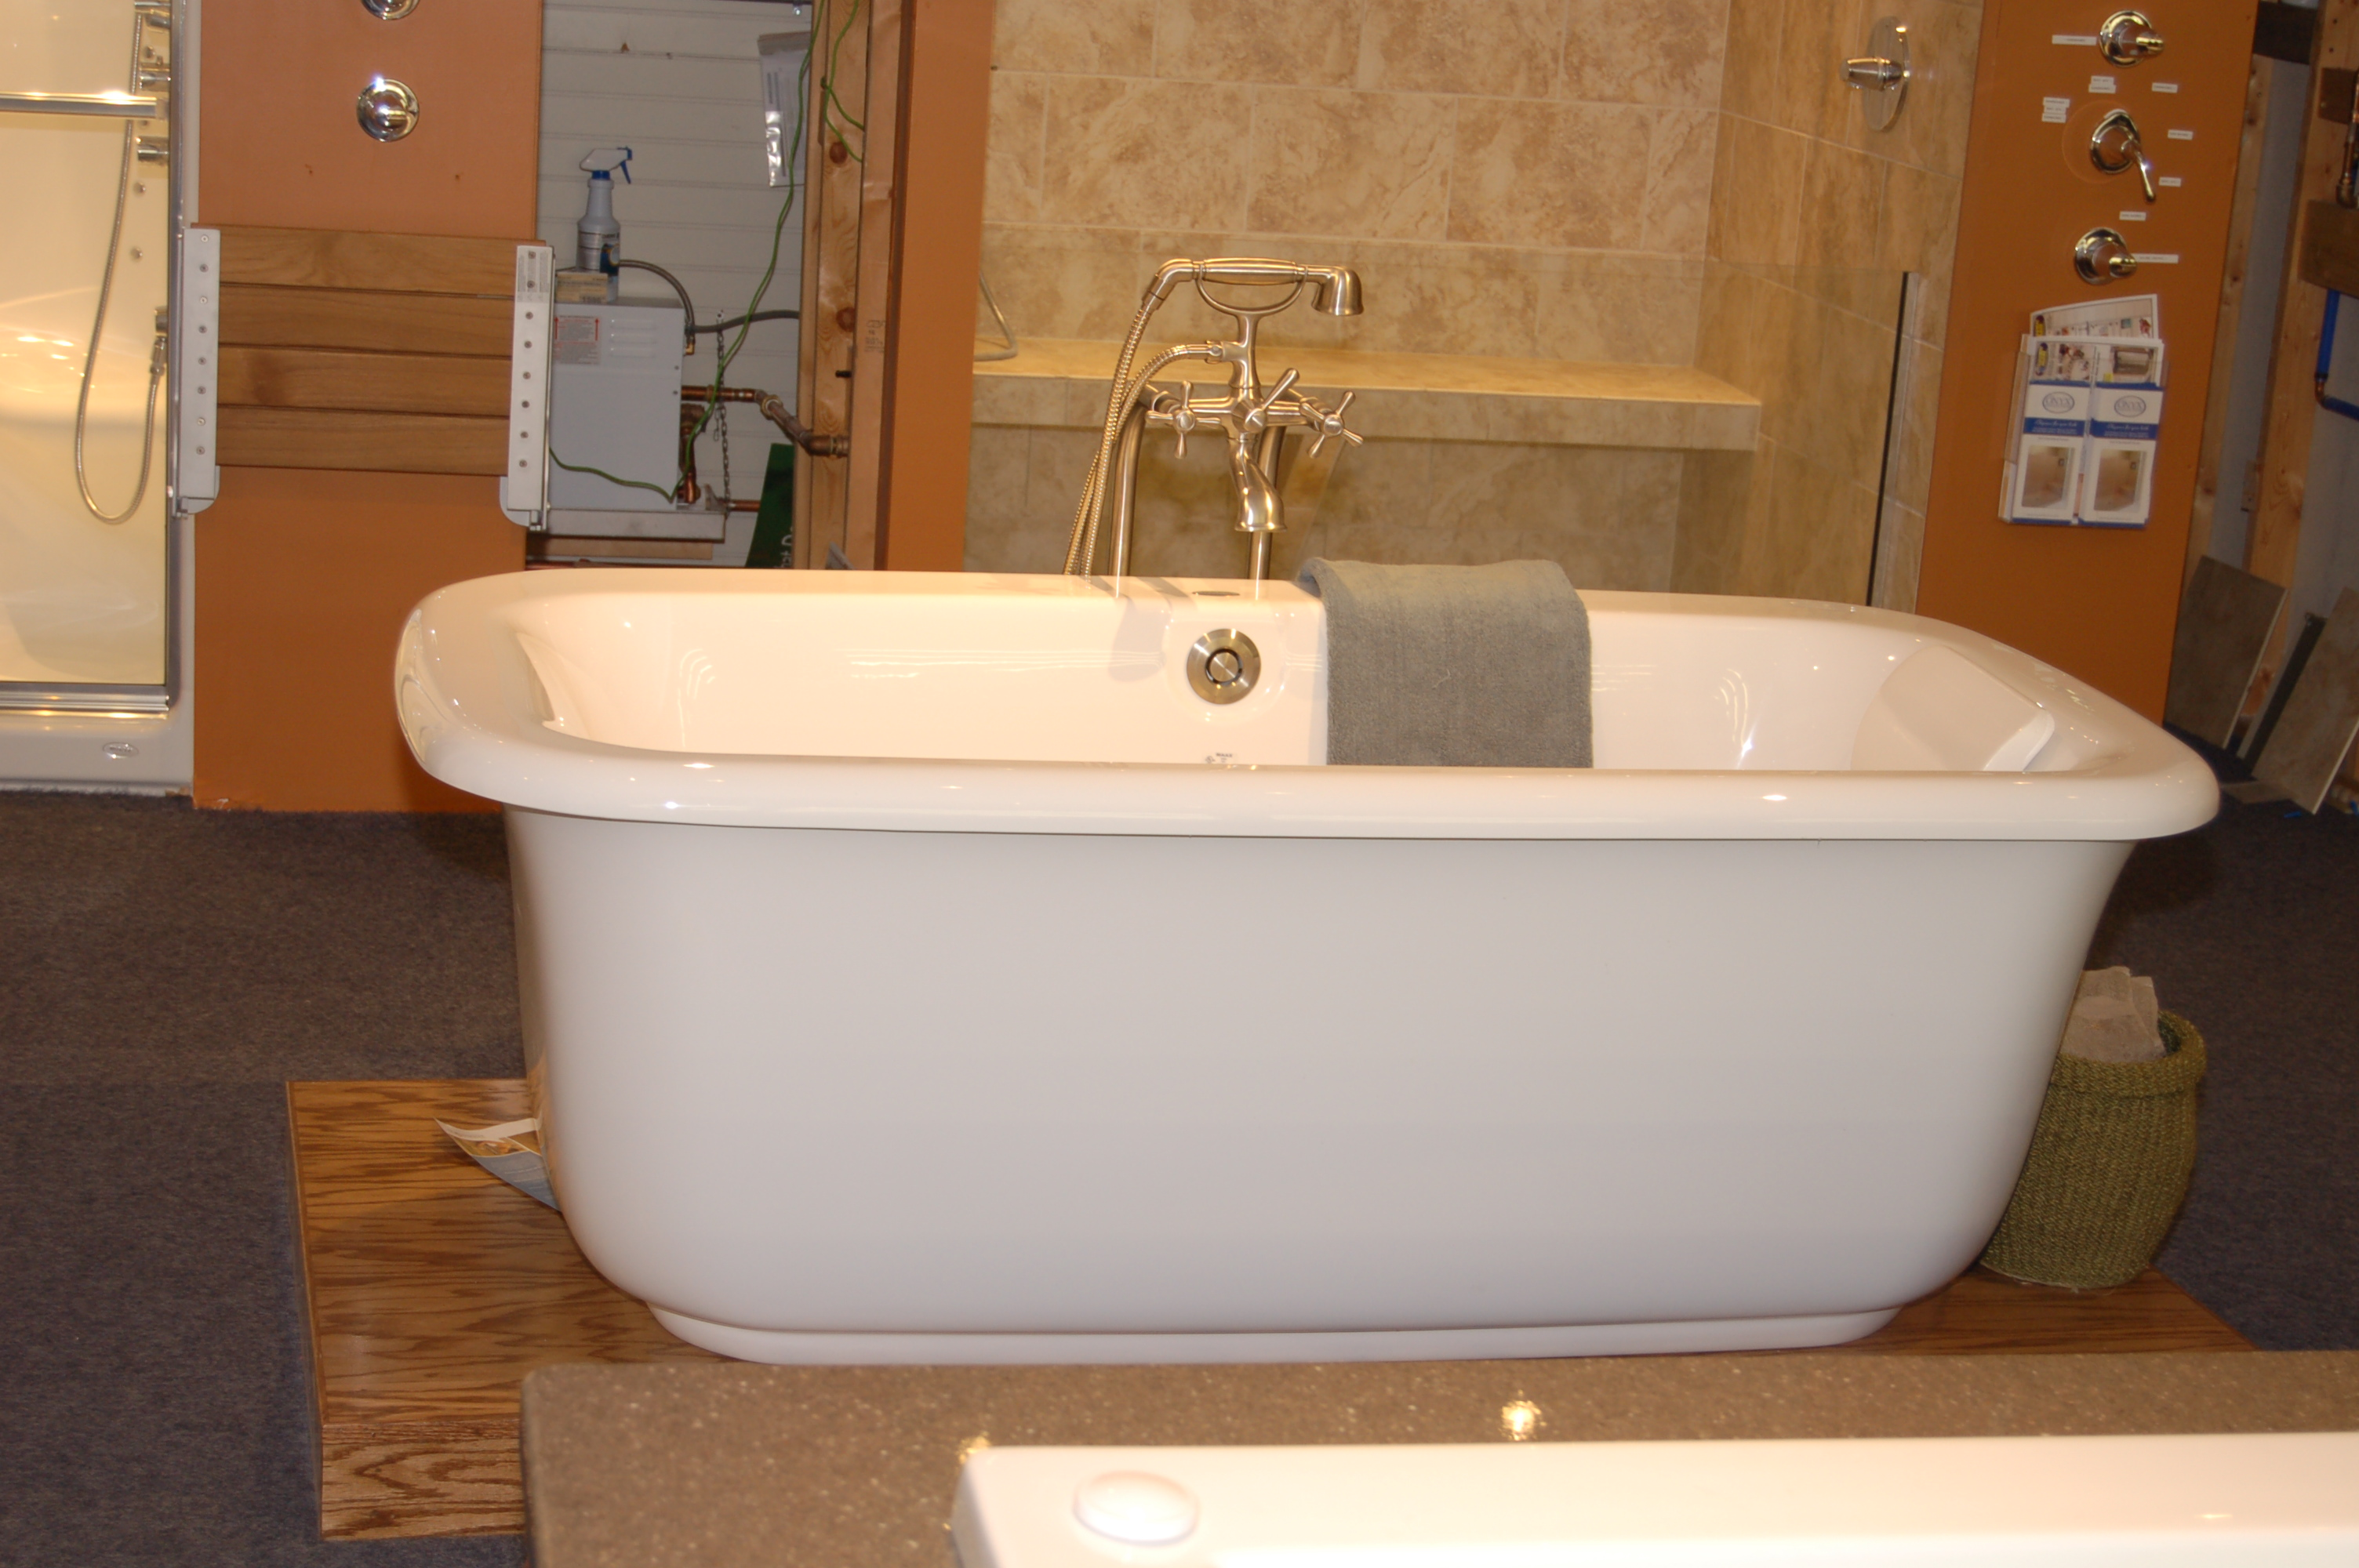 Kohler corner tubs with jets - Small Drop In Tubs Pictures To Pin On Pinterest Pinsdaddy Jacuzzi Bathtub